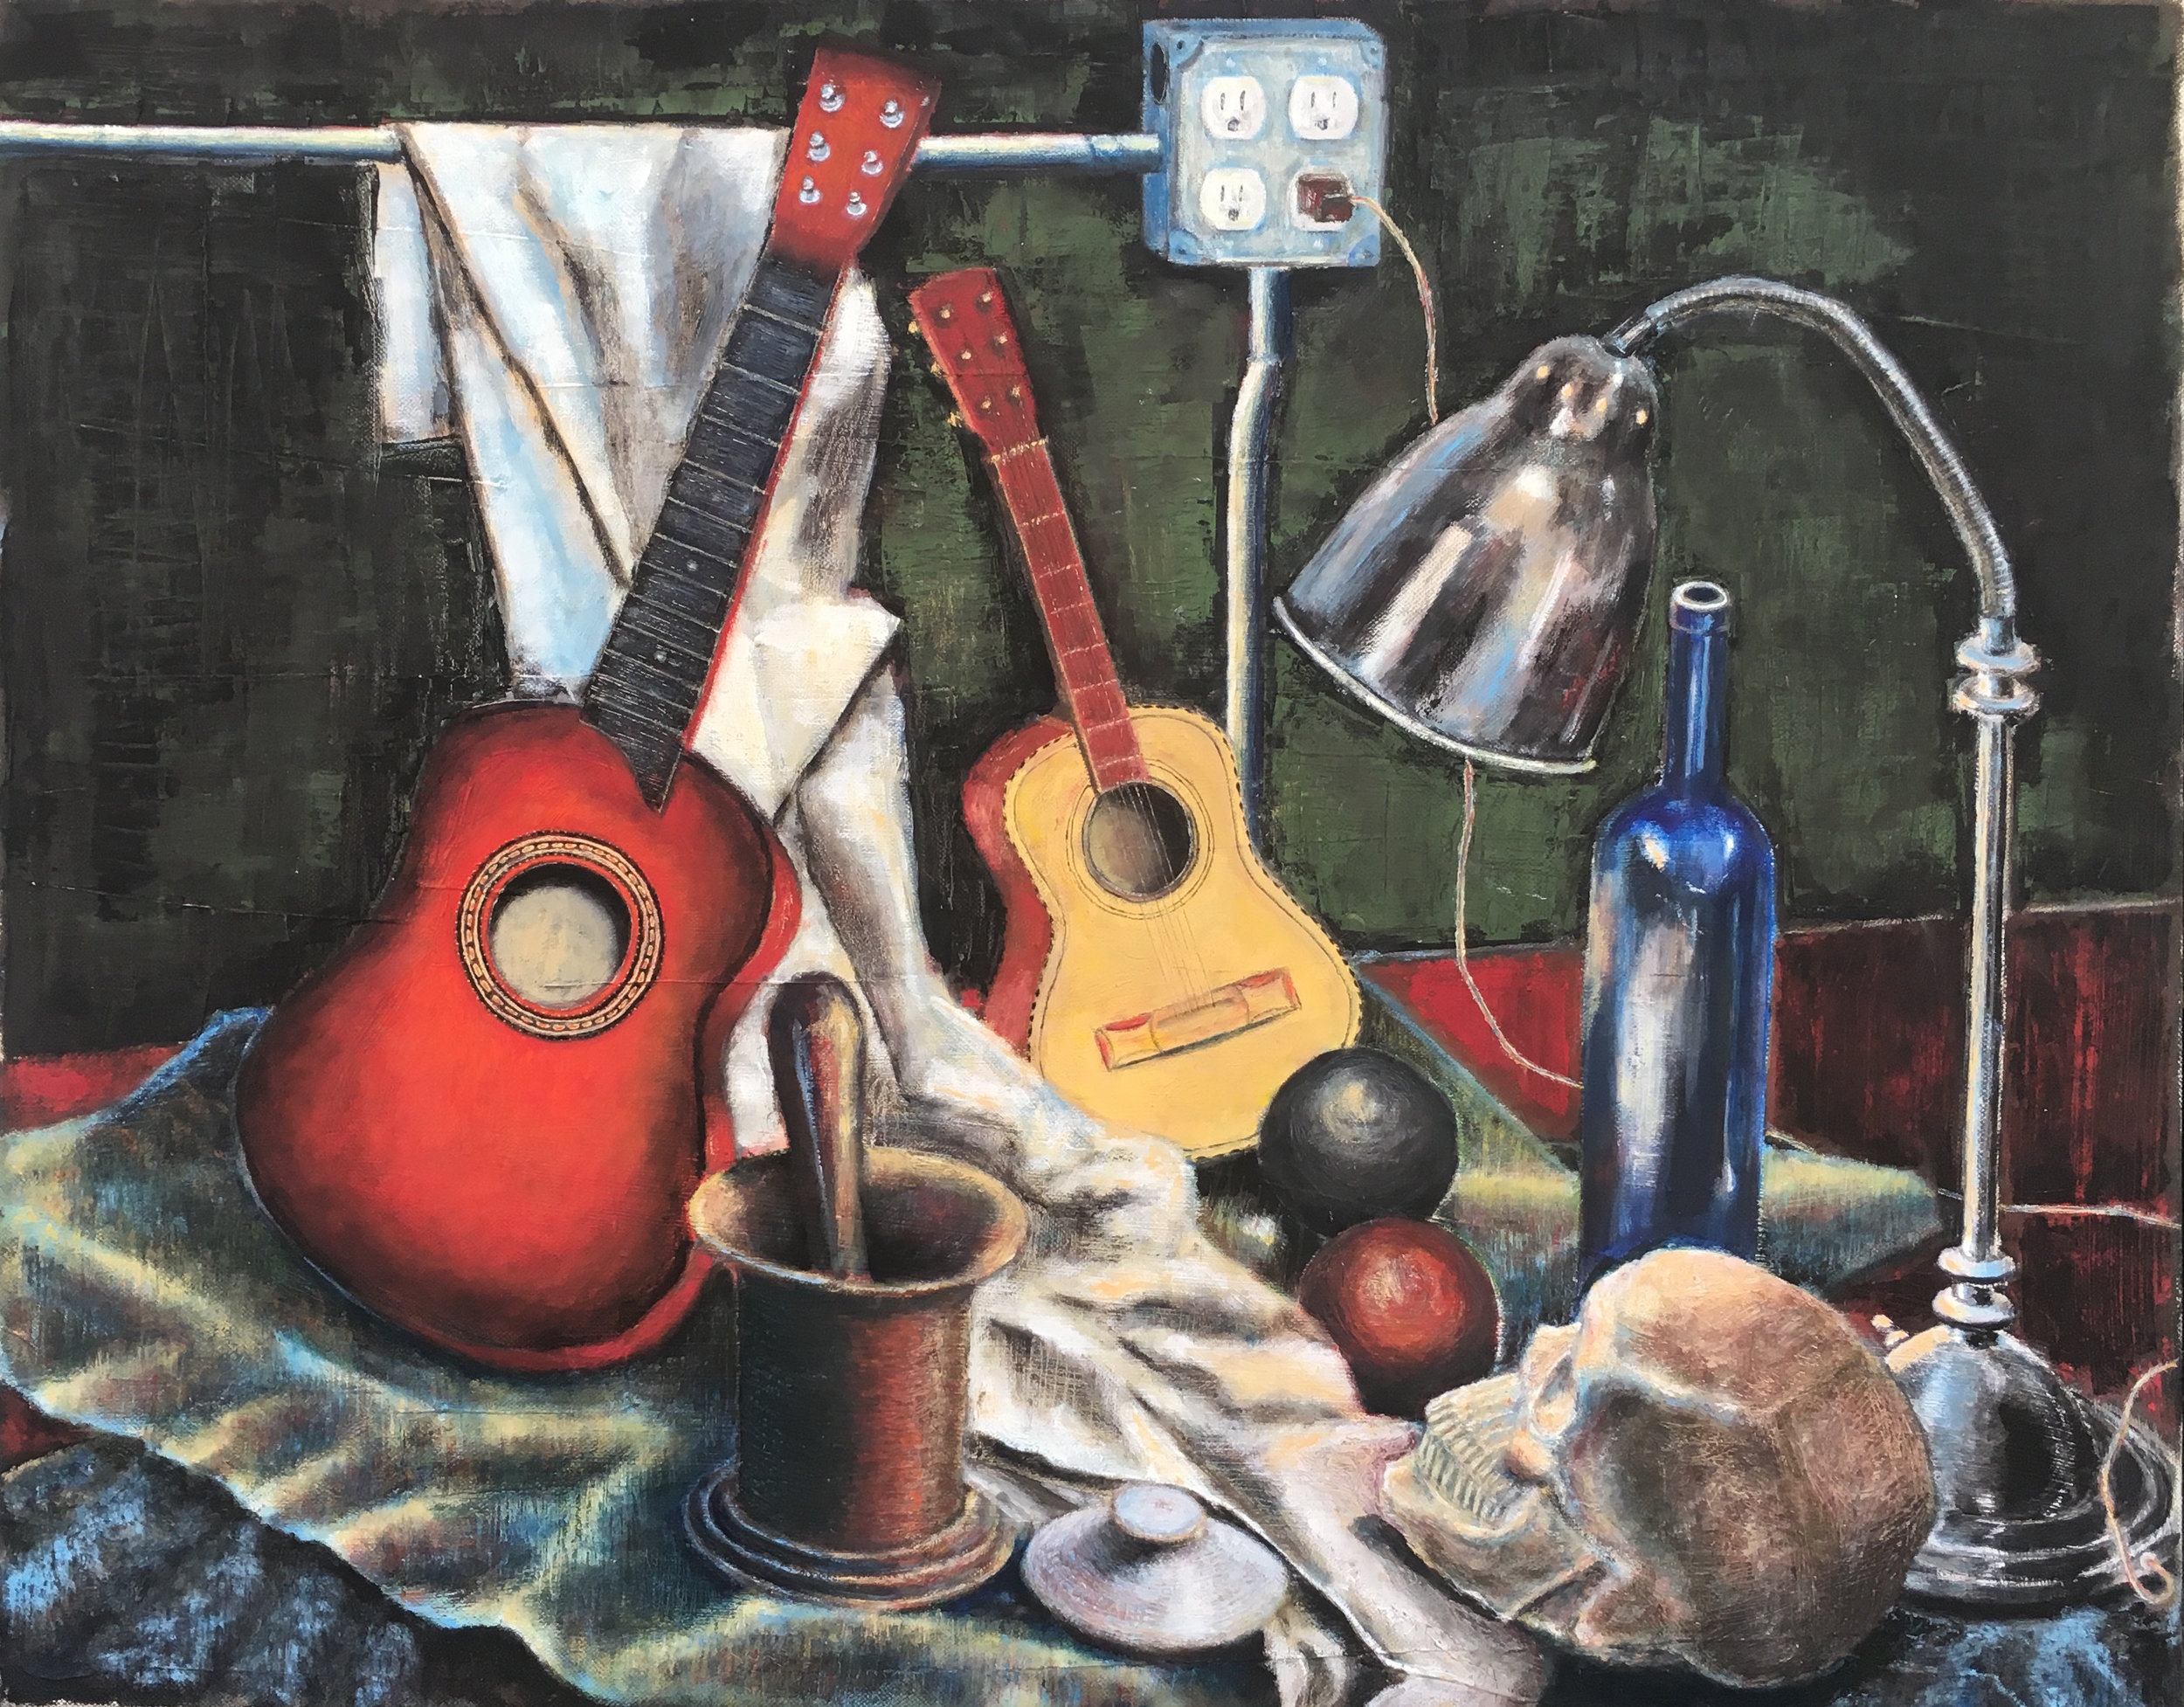 "2015 | Toy Guitars and Lamp | Oil on canvas | 24"" x 30"" (61 cm x 76.2 cm)"